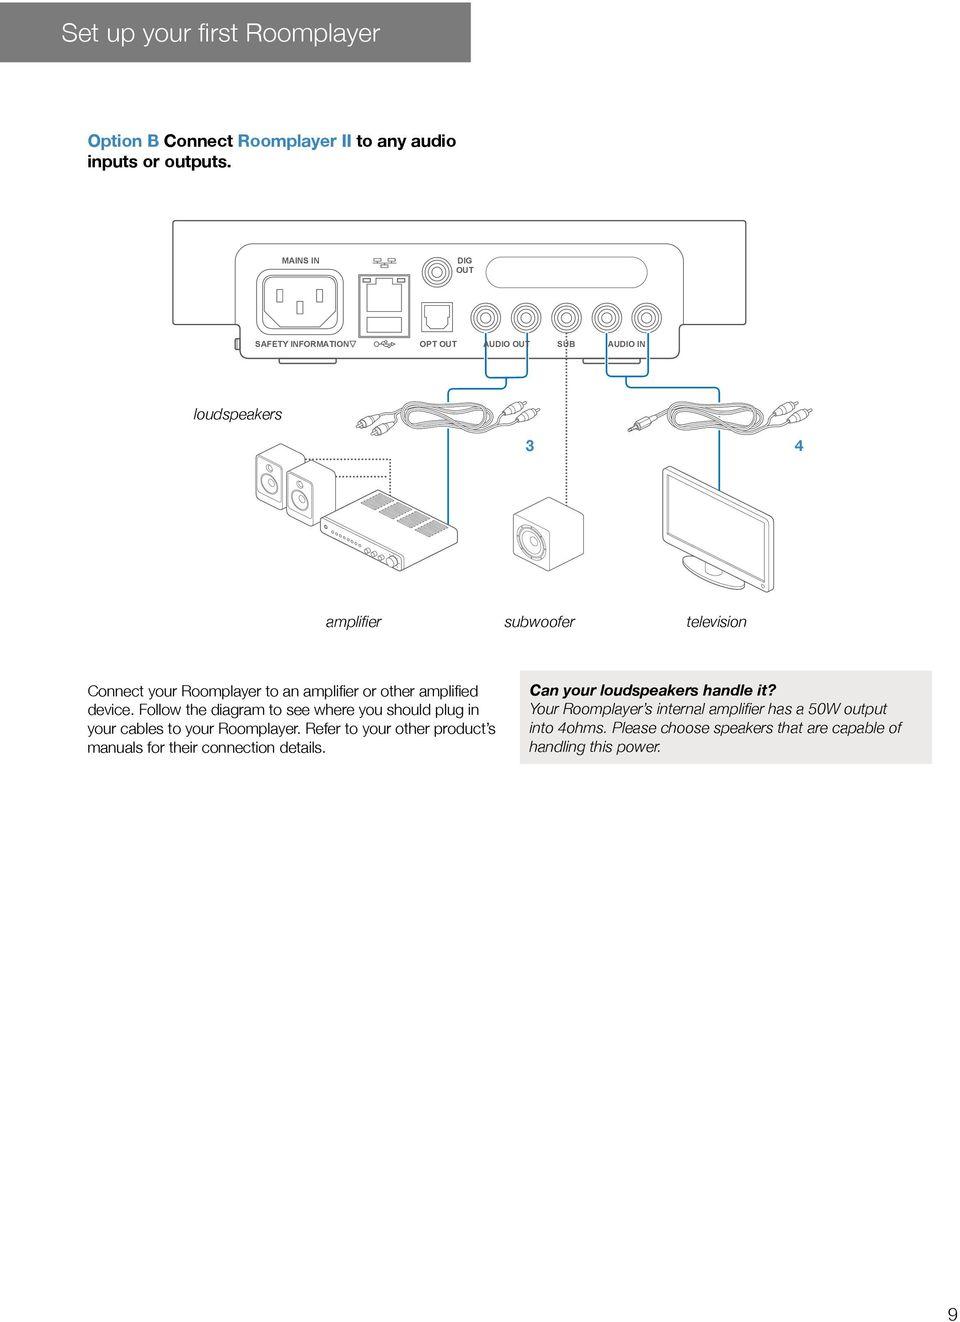 amplifier or other amplified device. Follow the diagram to see where you should plug in your cables to your Roomplayer.